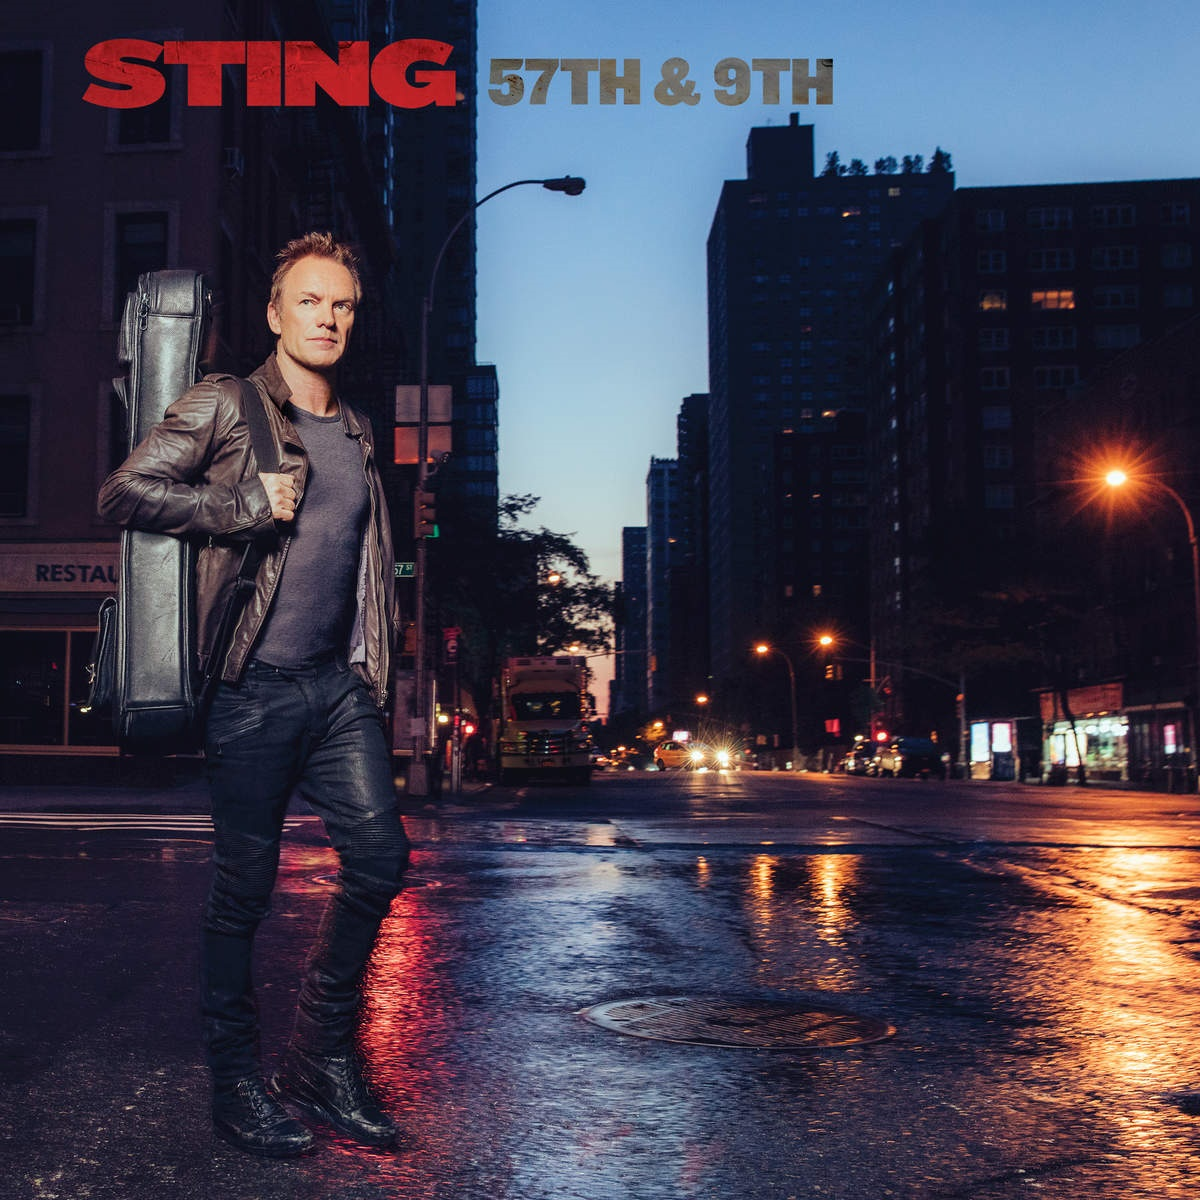 57th and 9th (Deluxe edition)